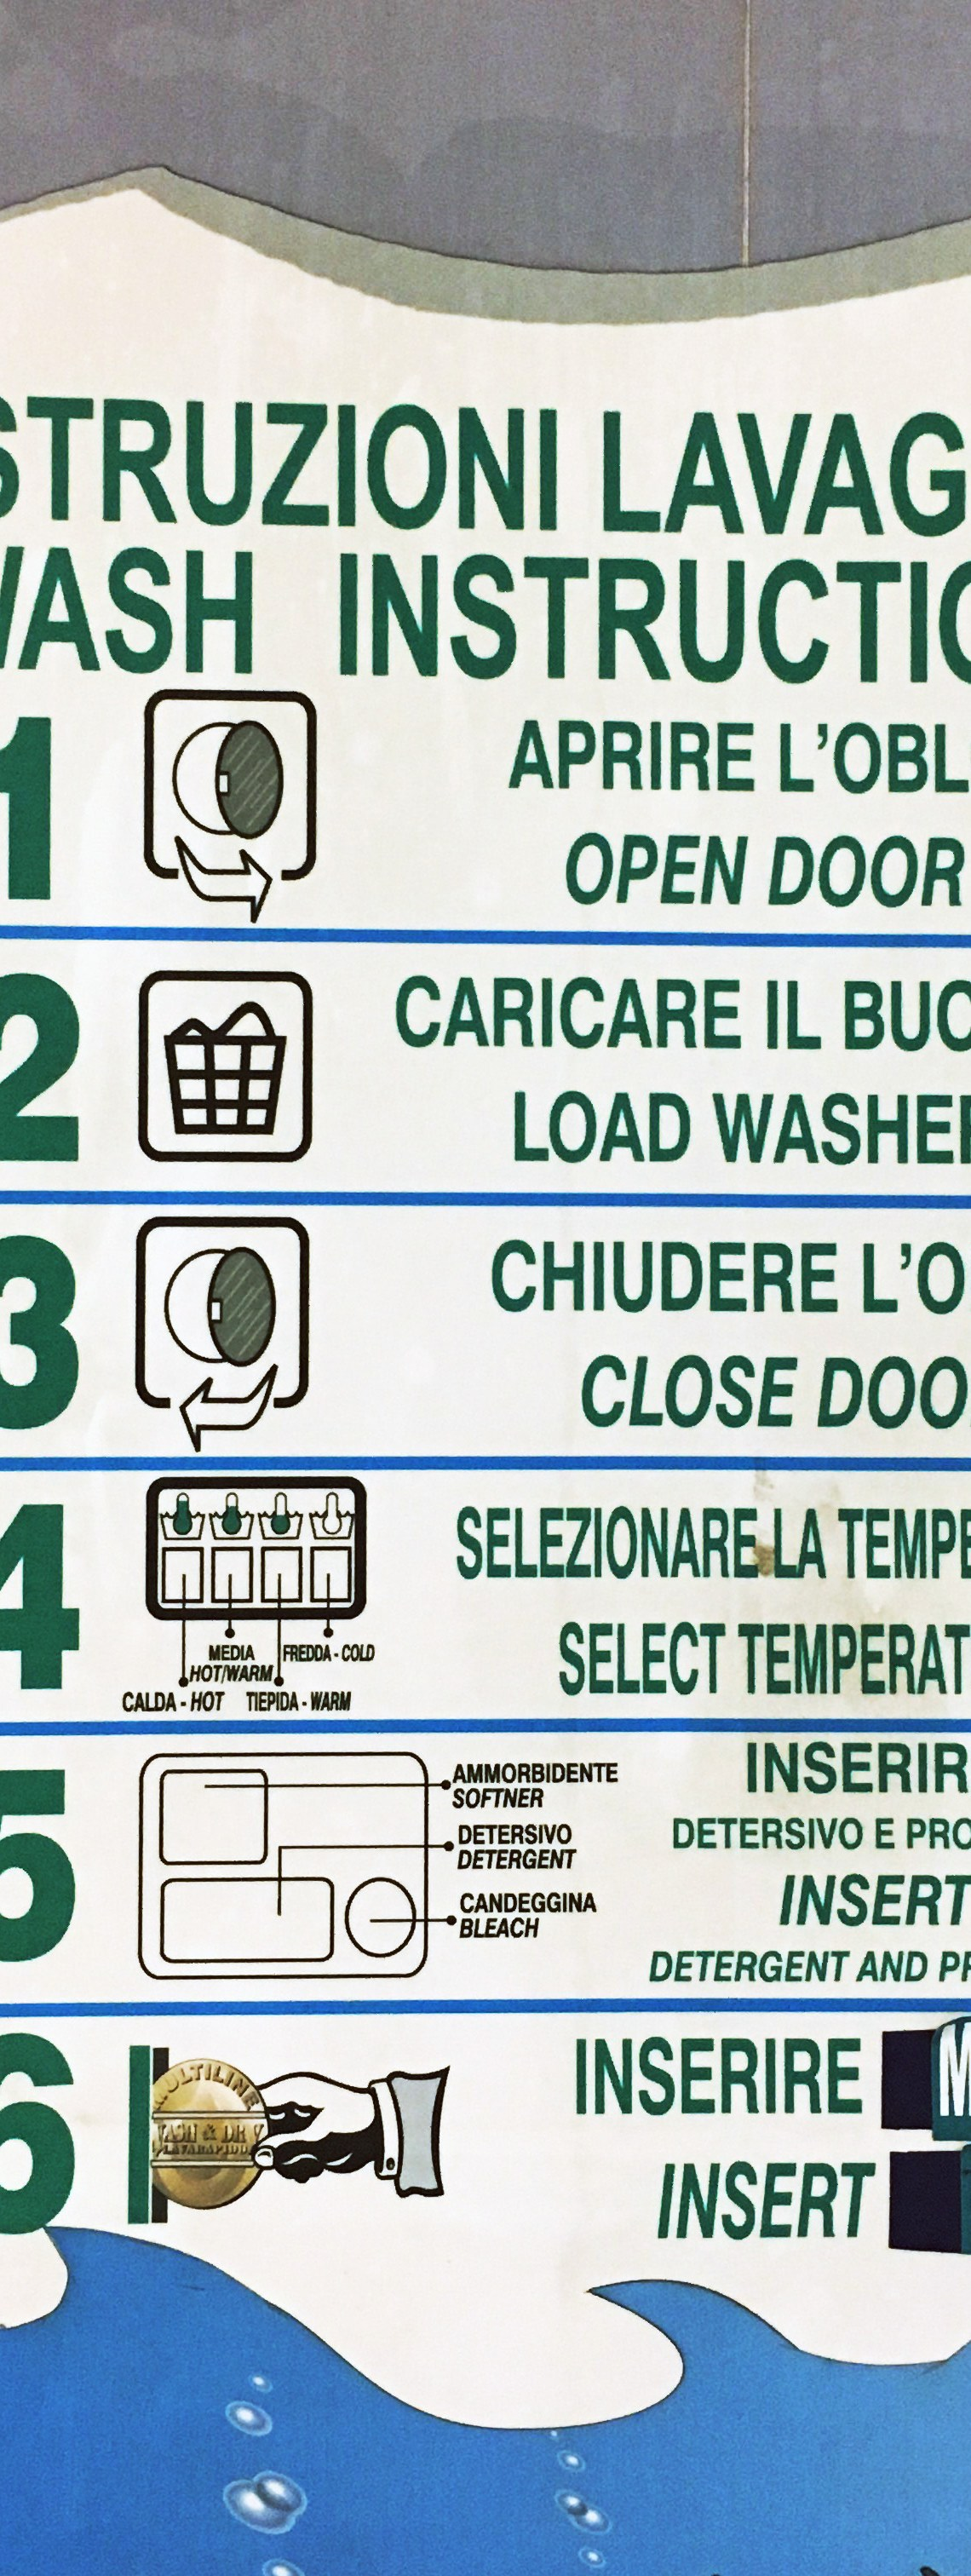 Laundromat Washing Abroad | Florence | The Travel Medley